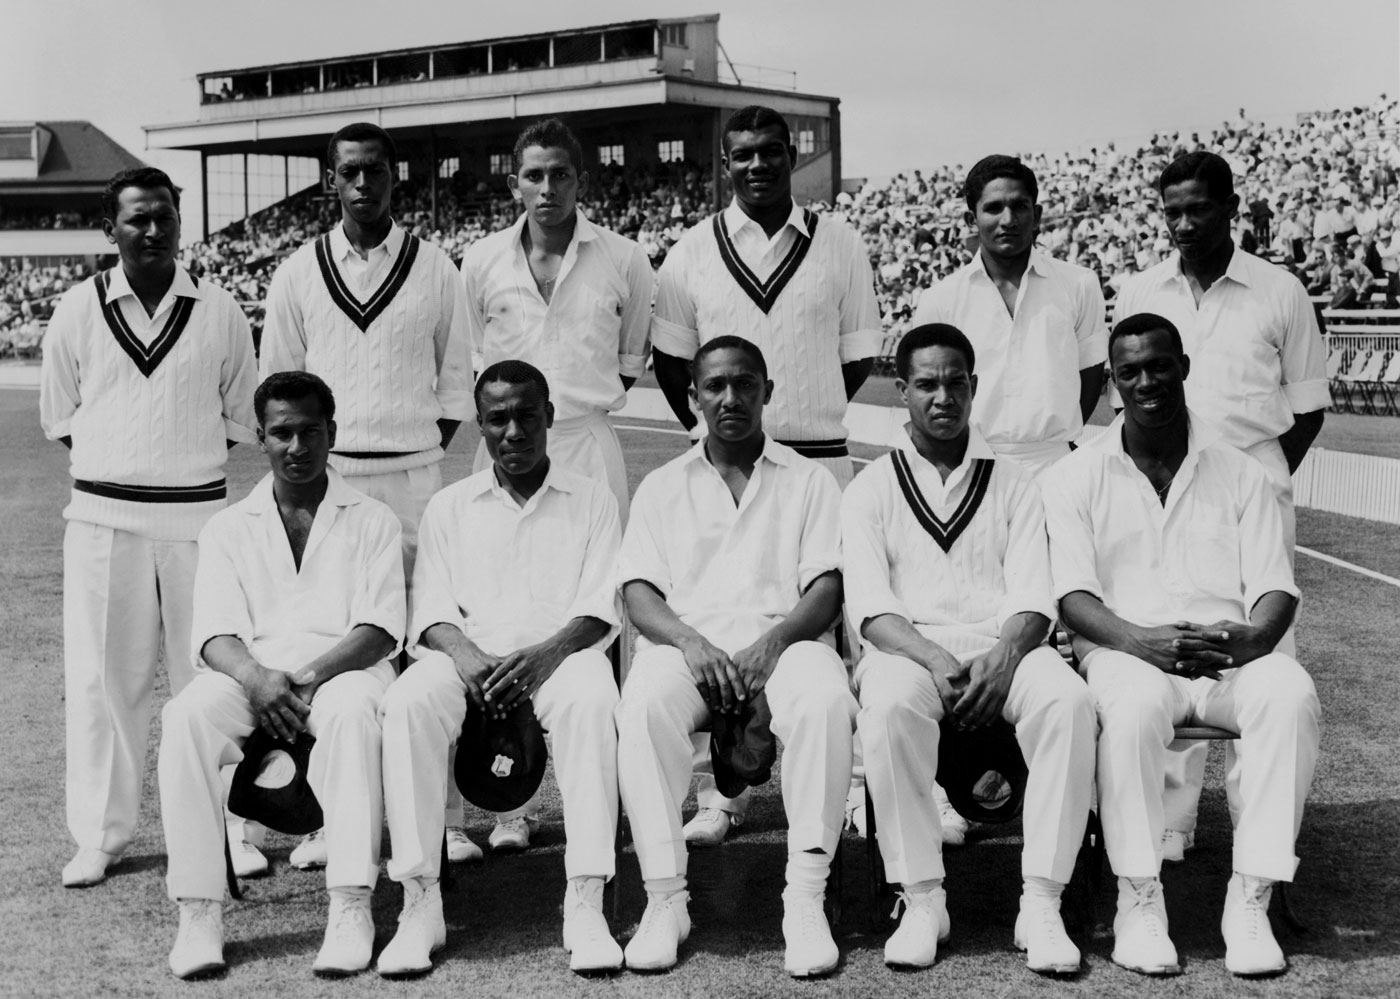 The West Indian teams of the mid-20th century forced people to re-examine their views on race